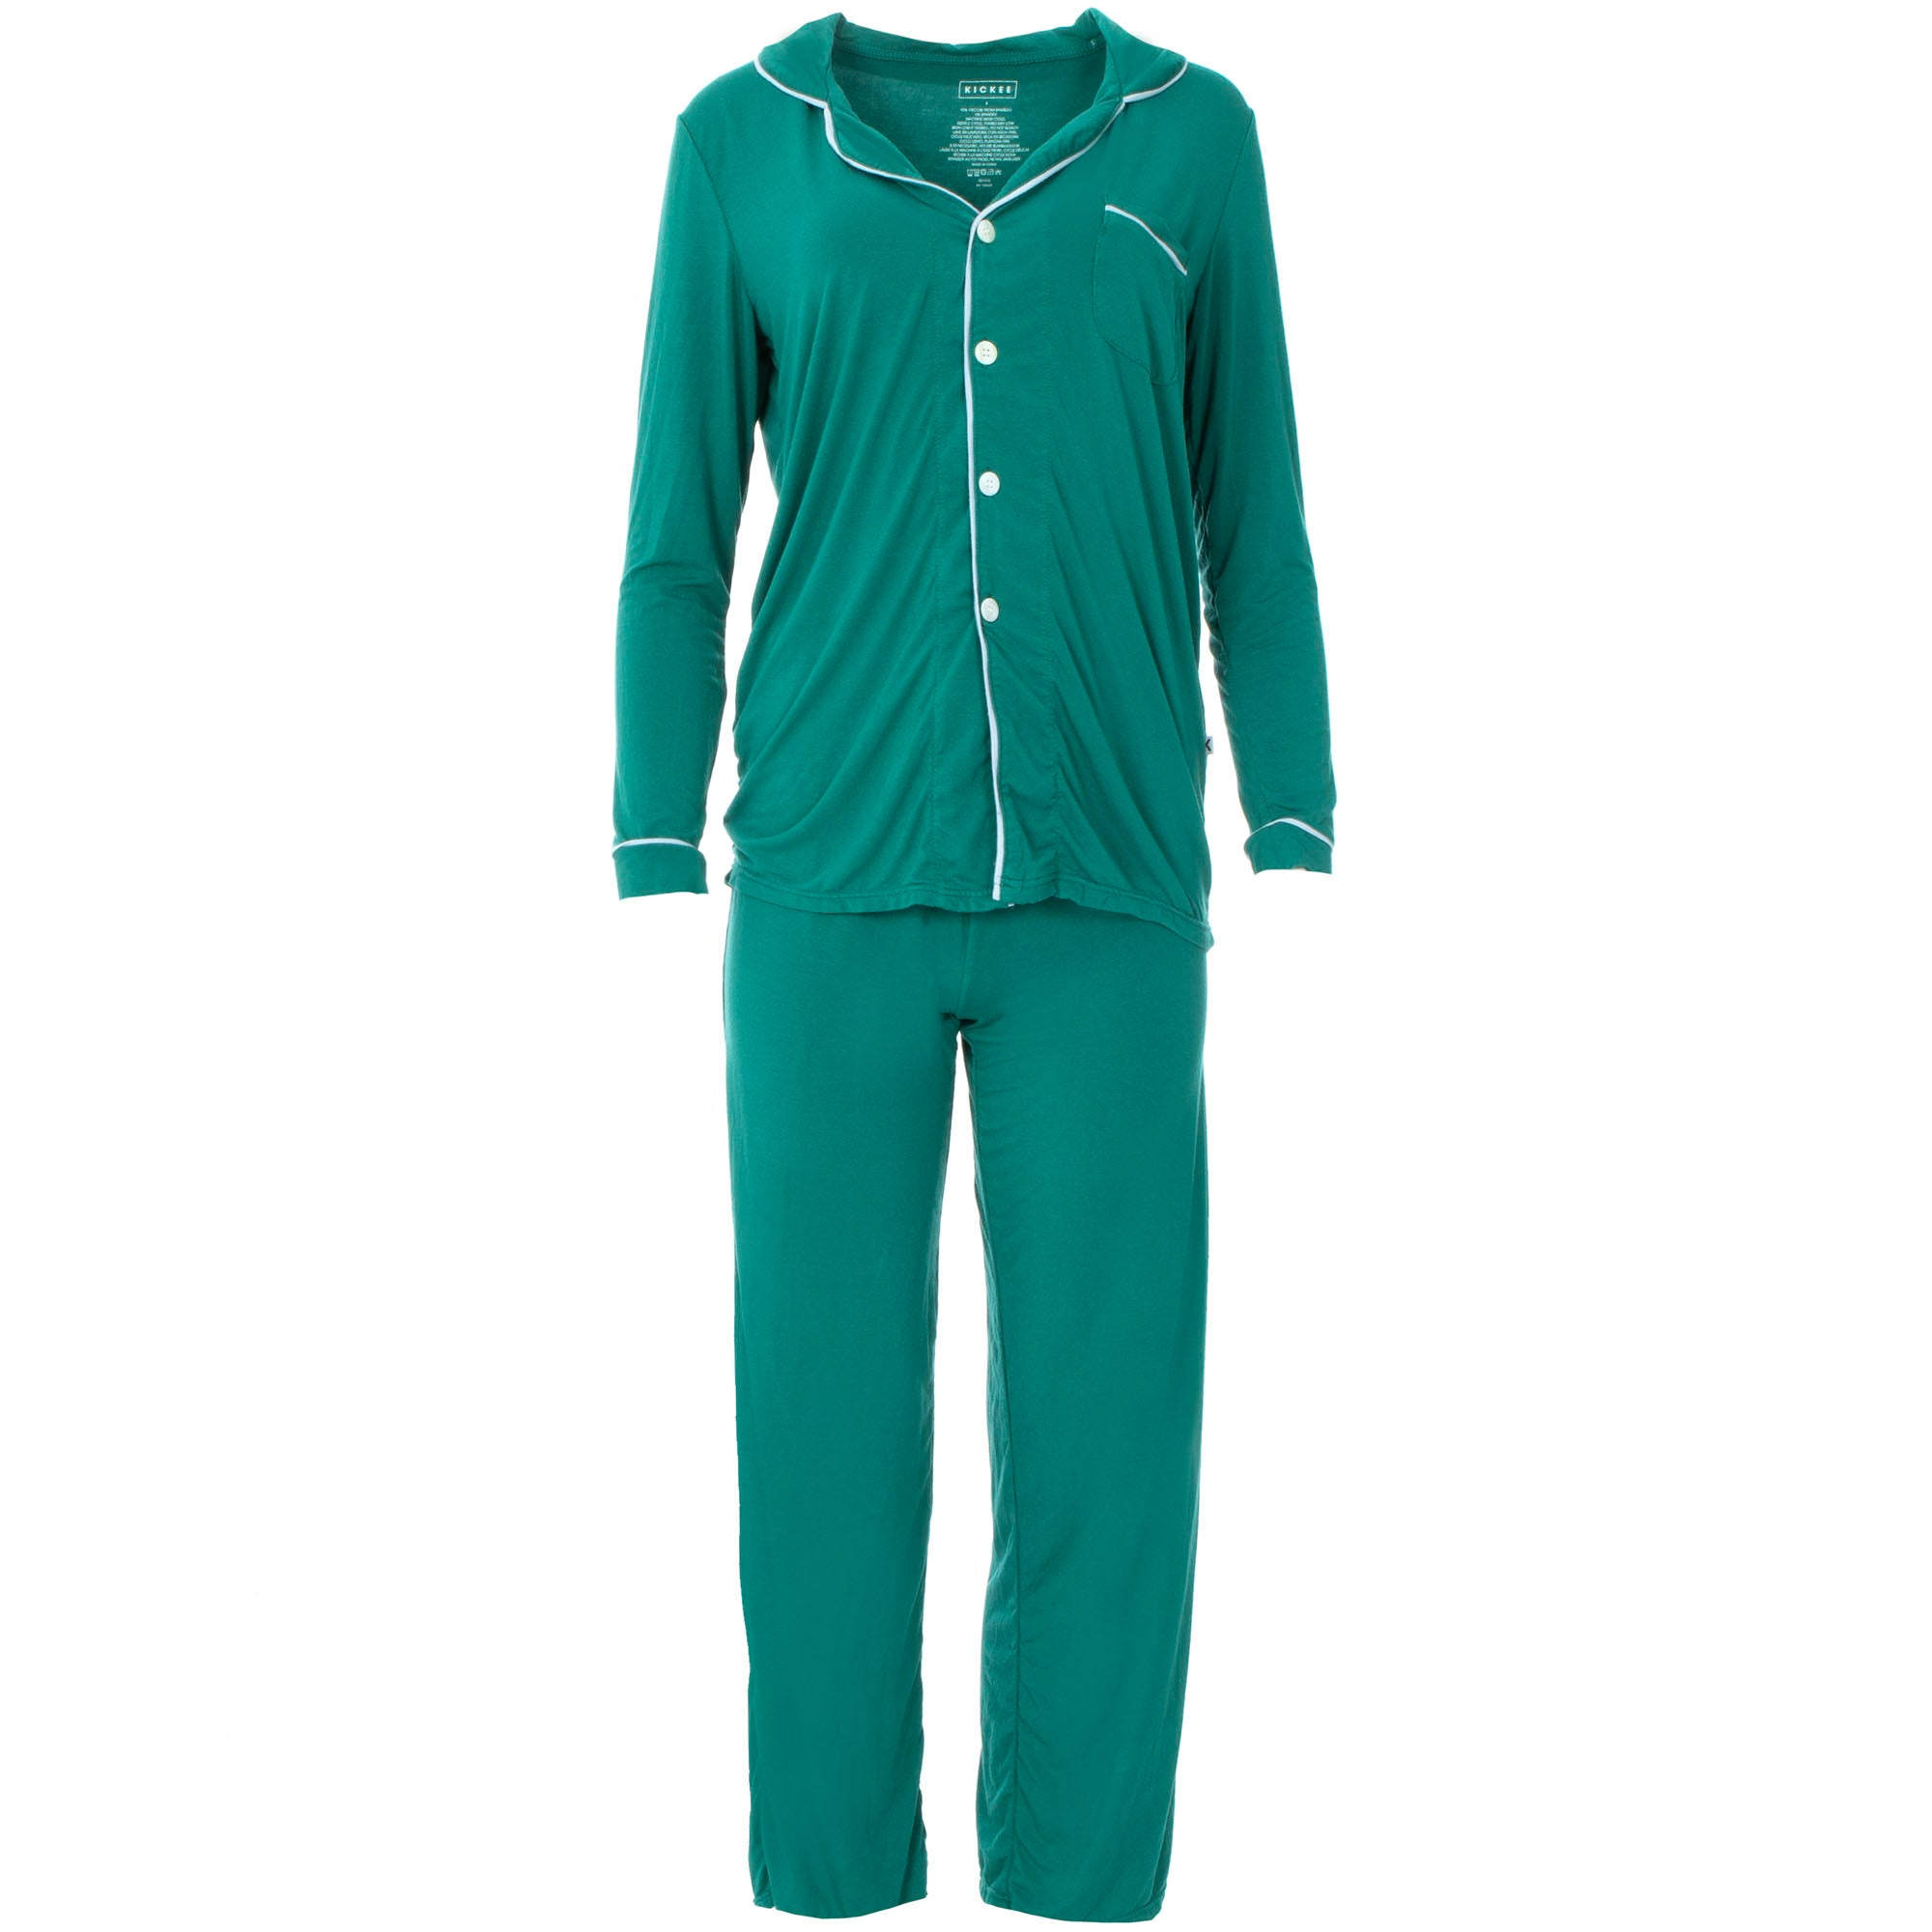 KicKee Pants Womens Pajama Set - Ivy